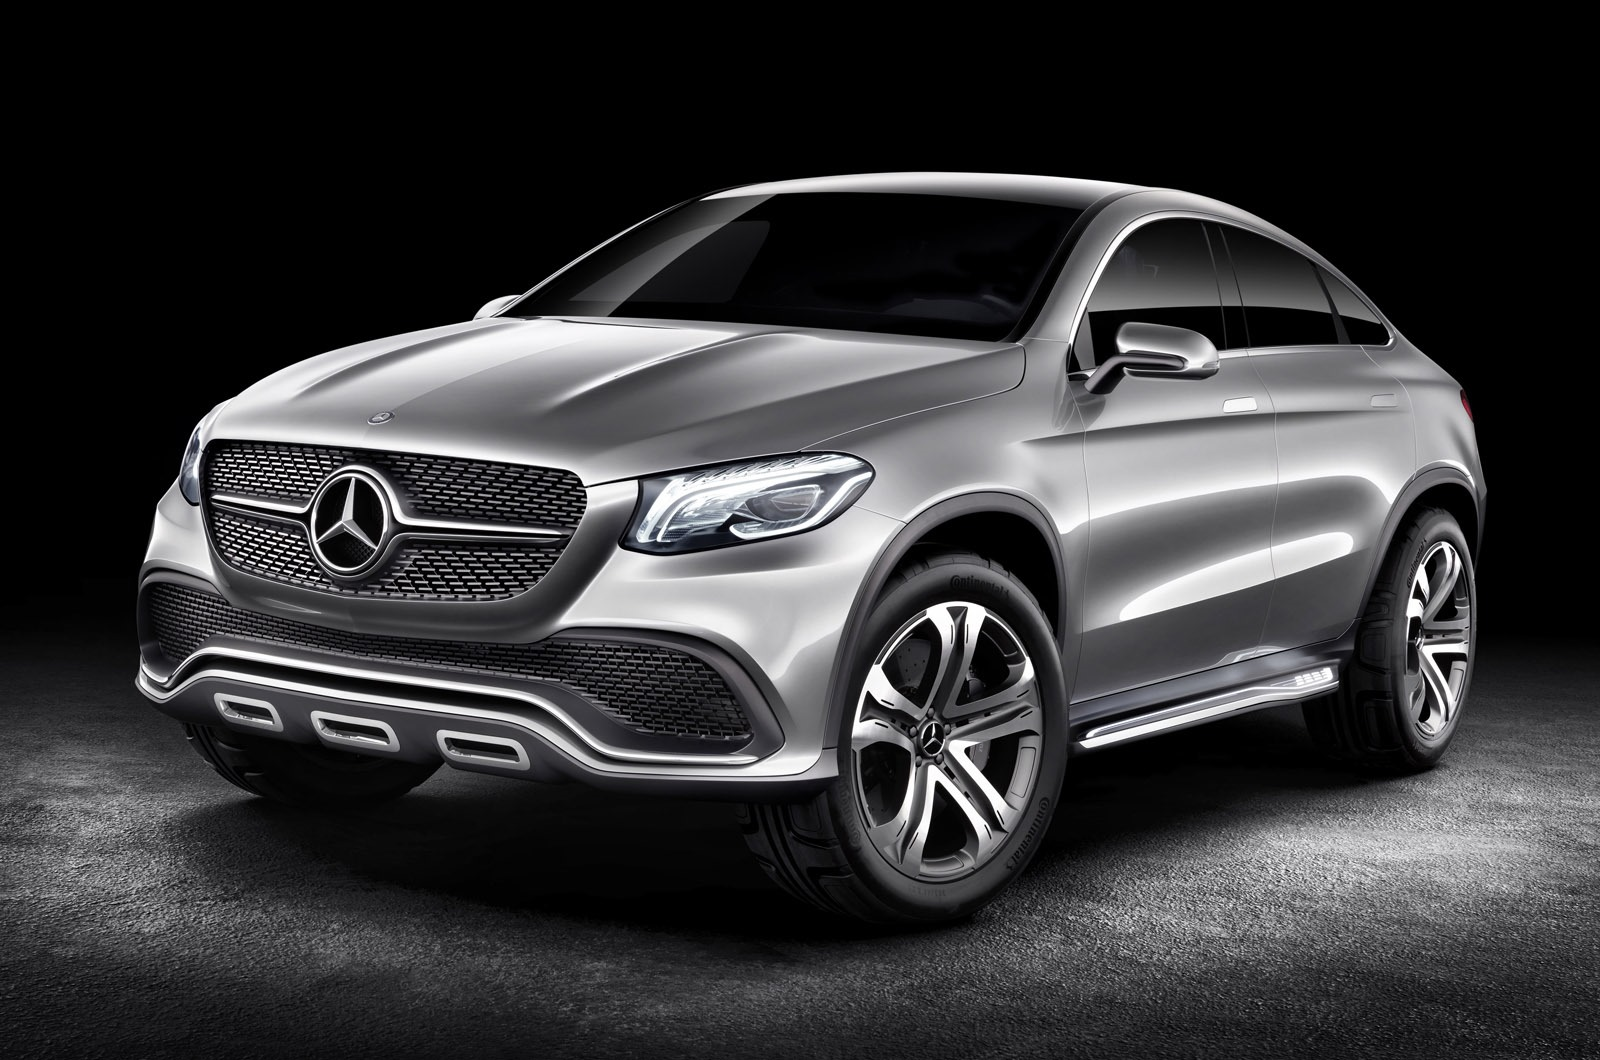 Mercedes benz concept coupe suv targets bmw x6 photos 1 for Mercedes benz concept coupe